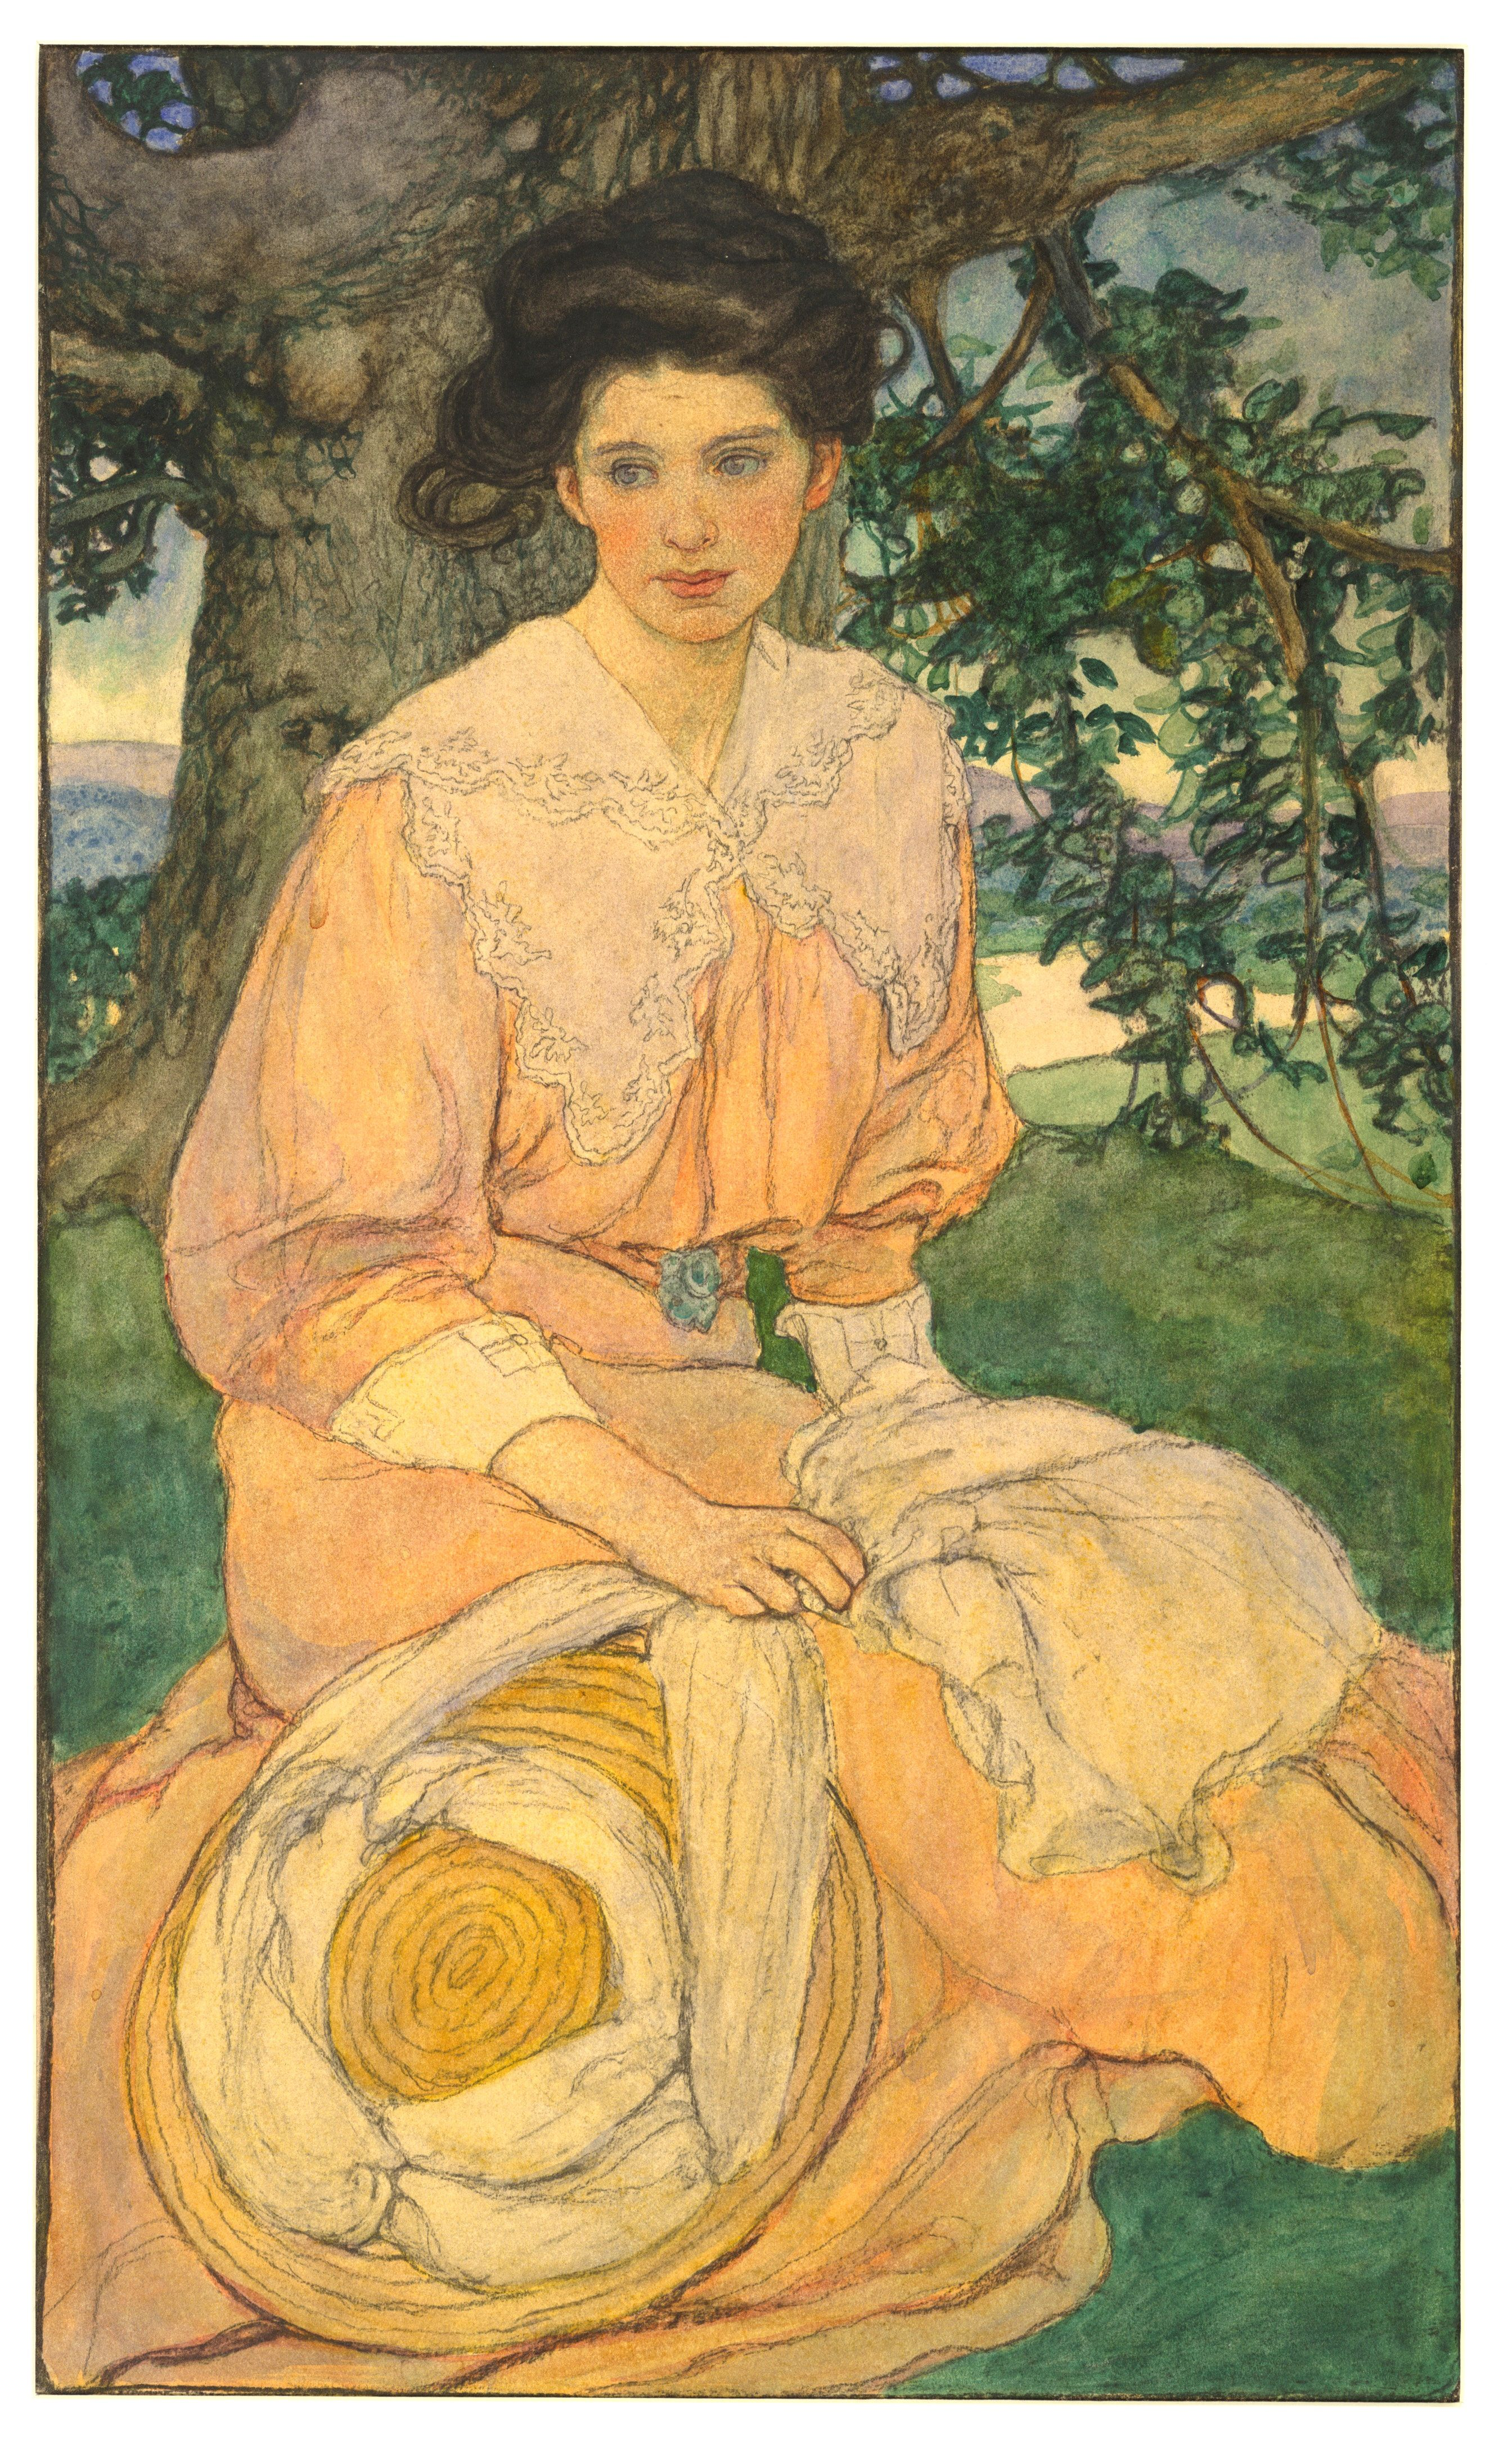 """""""Gisèle"""", by Elizabeth Shippen Green (American, 1871-1954) -- See more at: http://giam.typepad.com/100_years_of_illustration/elizabeth_shippen_green_18711954/"""